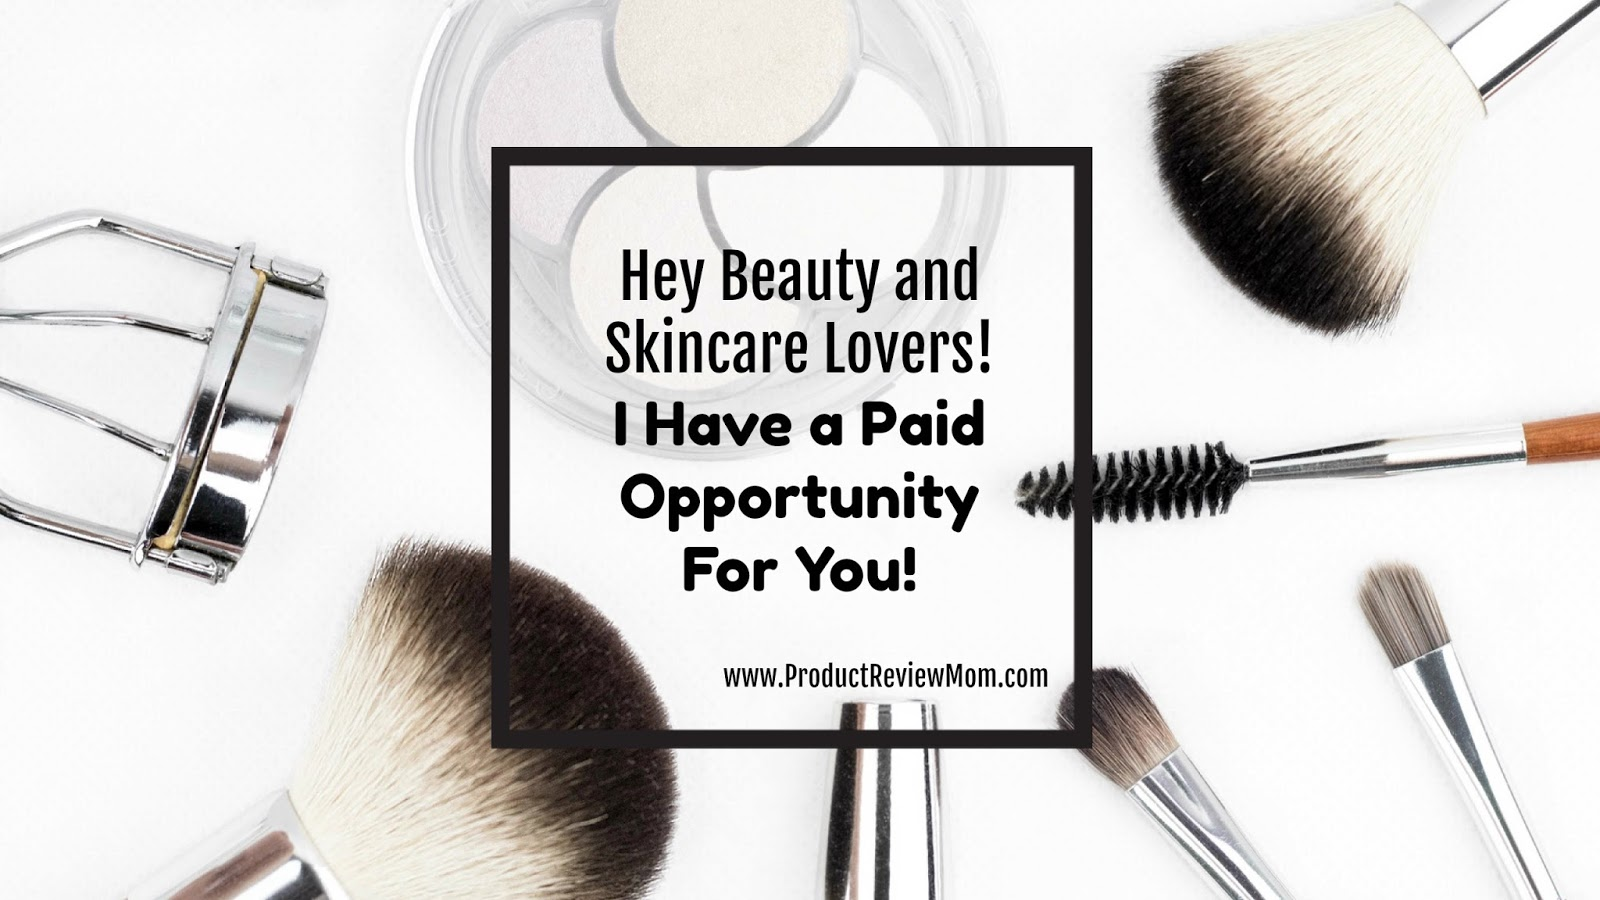 Hey Beauty and Skincare Lovers!  I Have a Paid Opportunity For You!  via  www.productreviewmom.com